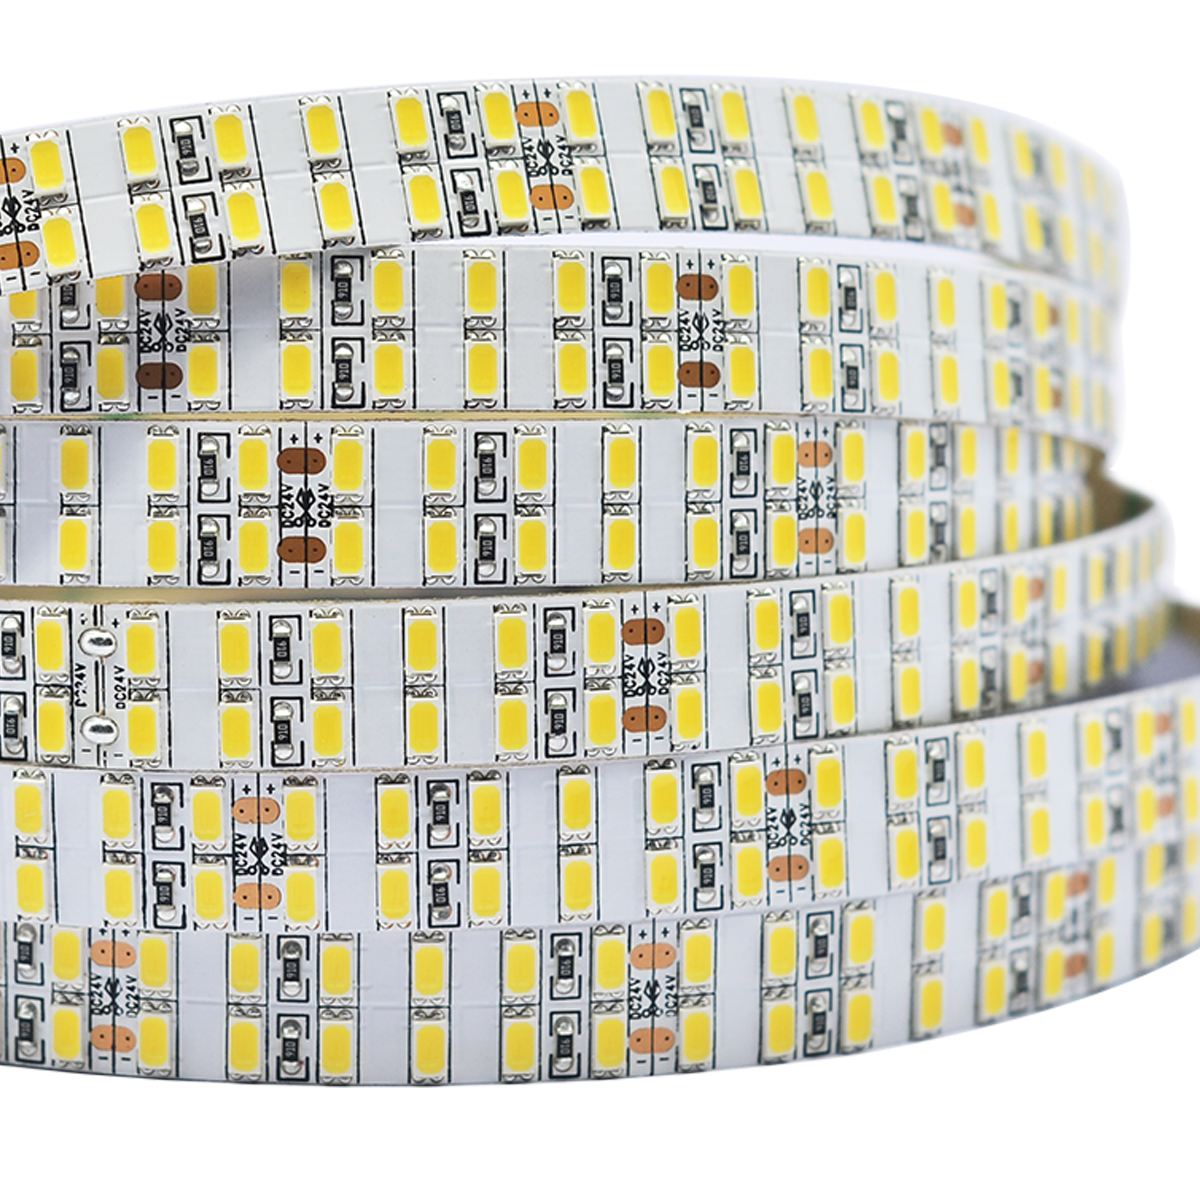 Single Row Series DC12V 5630SMD Parallel column 300LEDs Flexible LED Strip Lights Home Lighting 16.4ft Per Reel By Sale